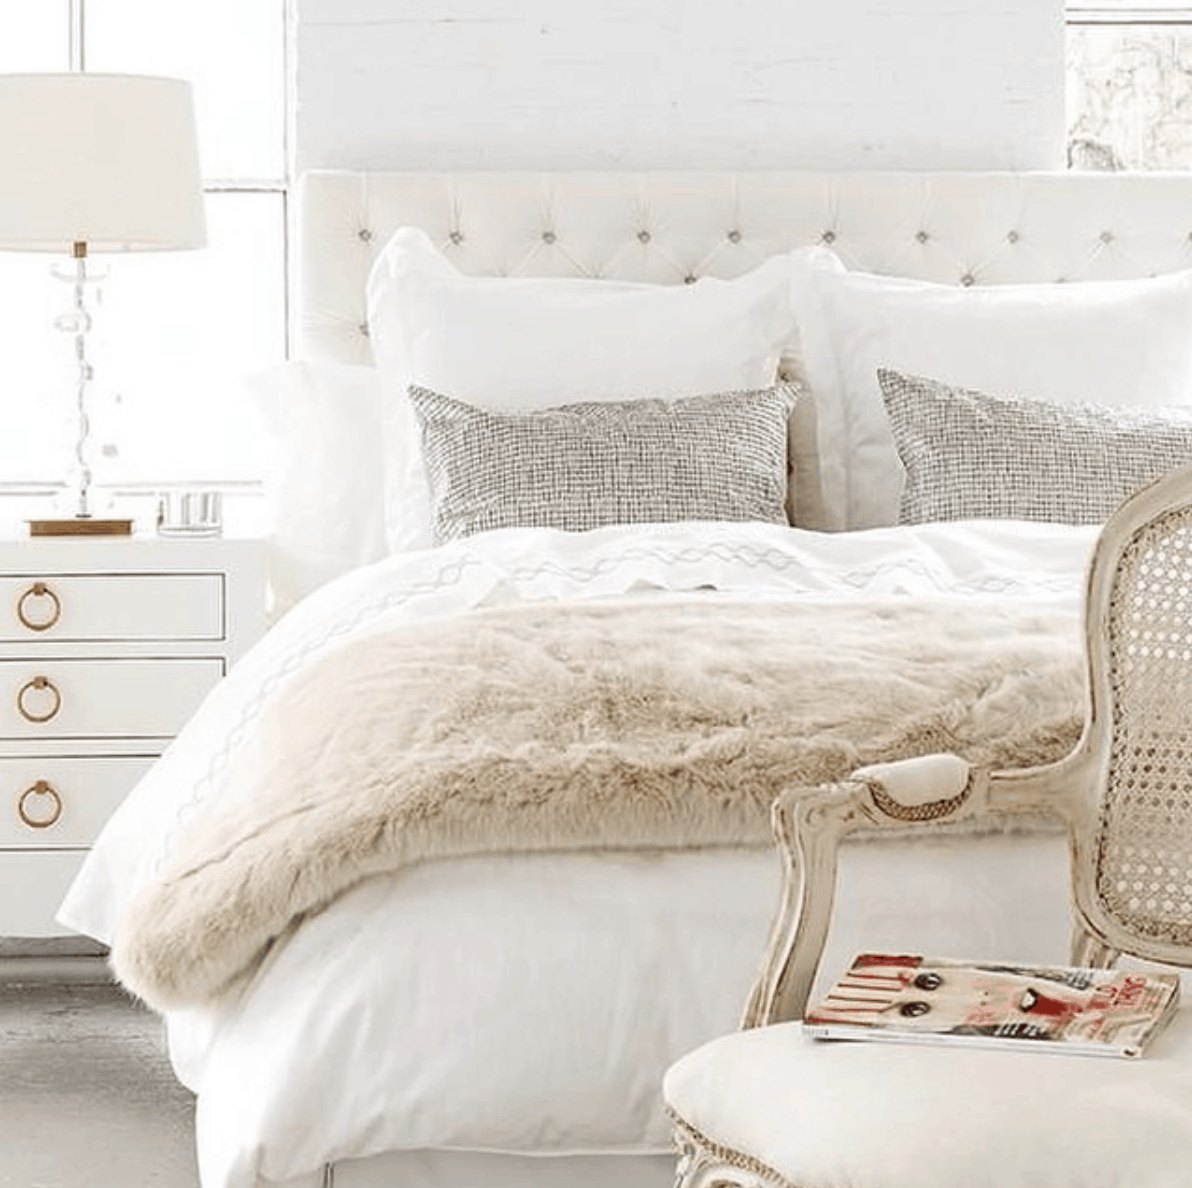 faux fur throw blanket and winter bedroom decor ideas